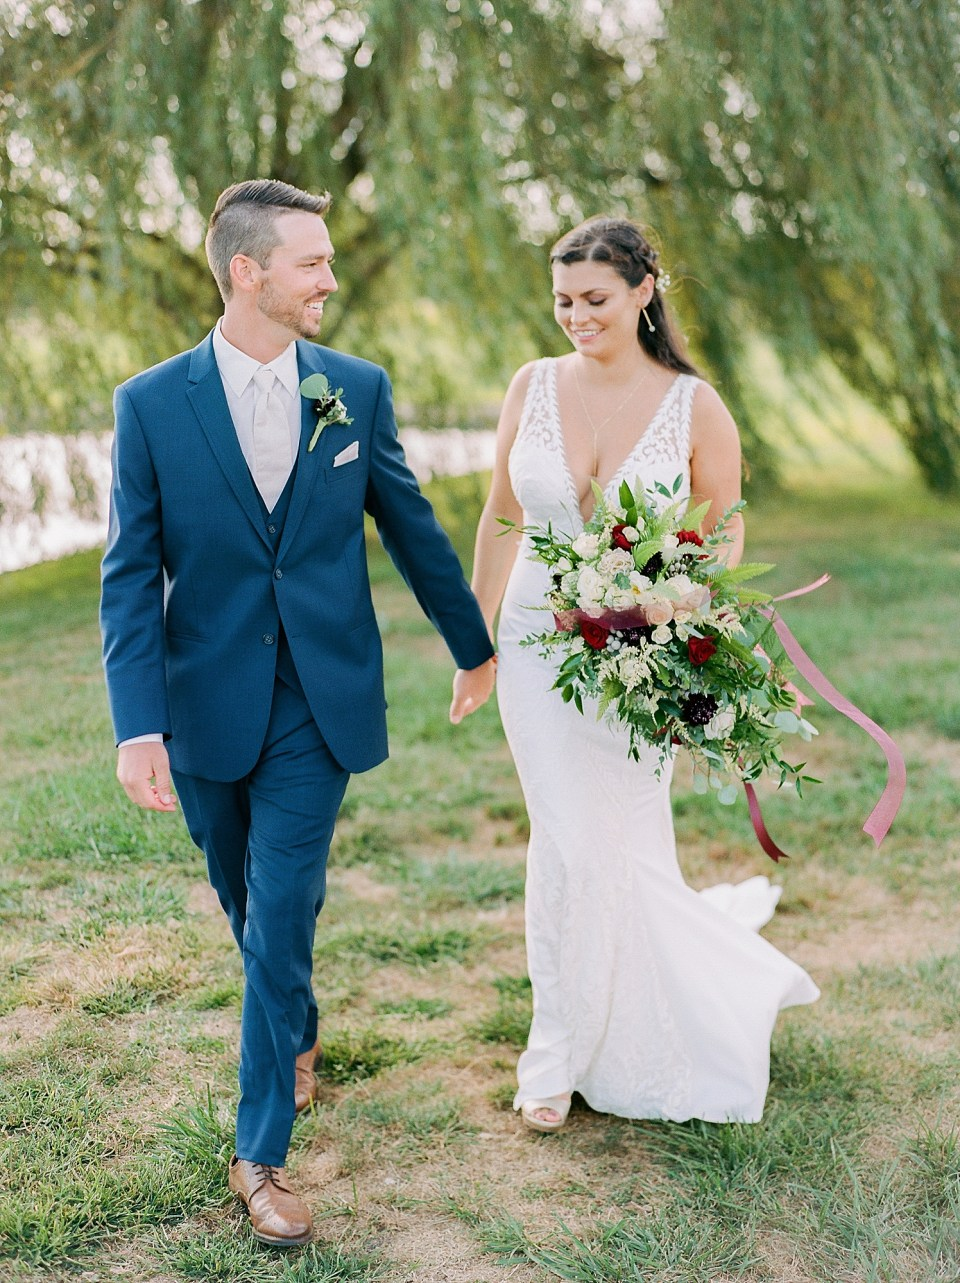 Linwood Country Club Film Wedding Photography by Magdalena Studios South Jersey Wedding Photographer 12